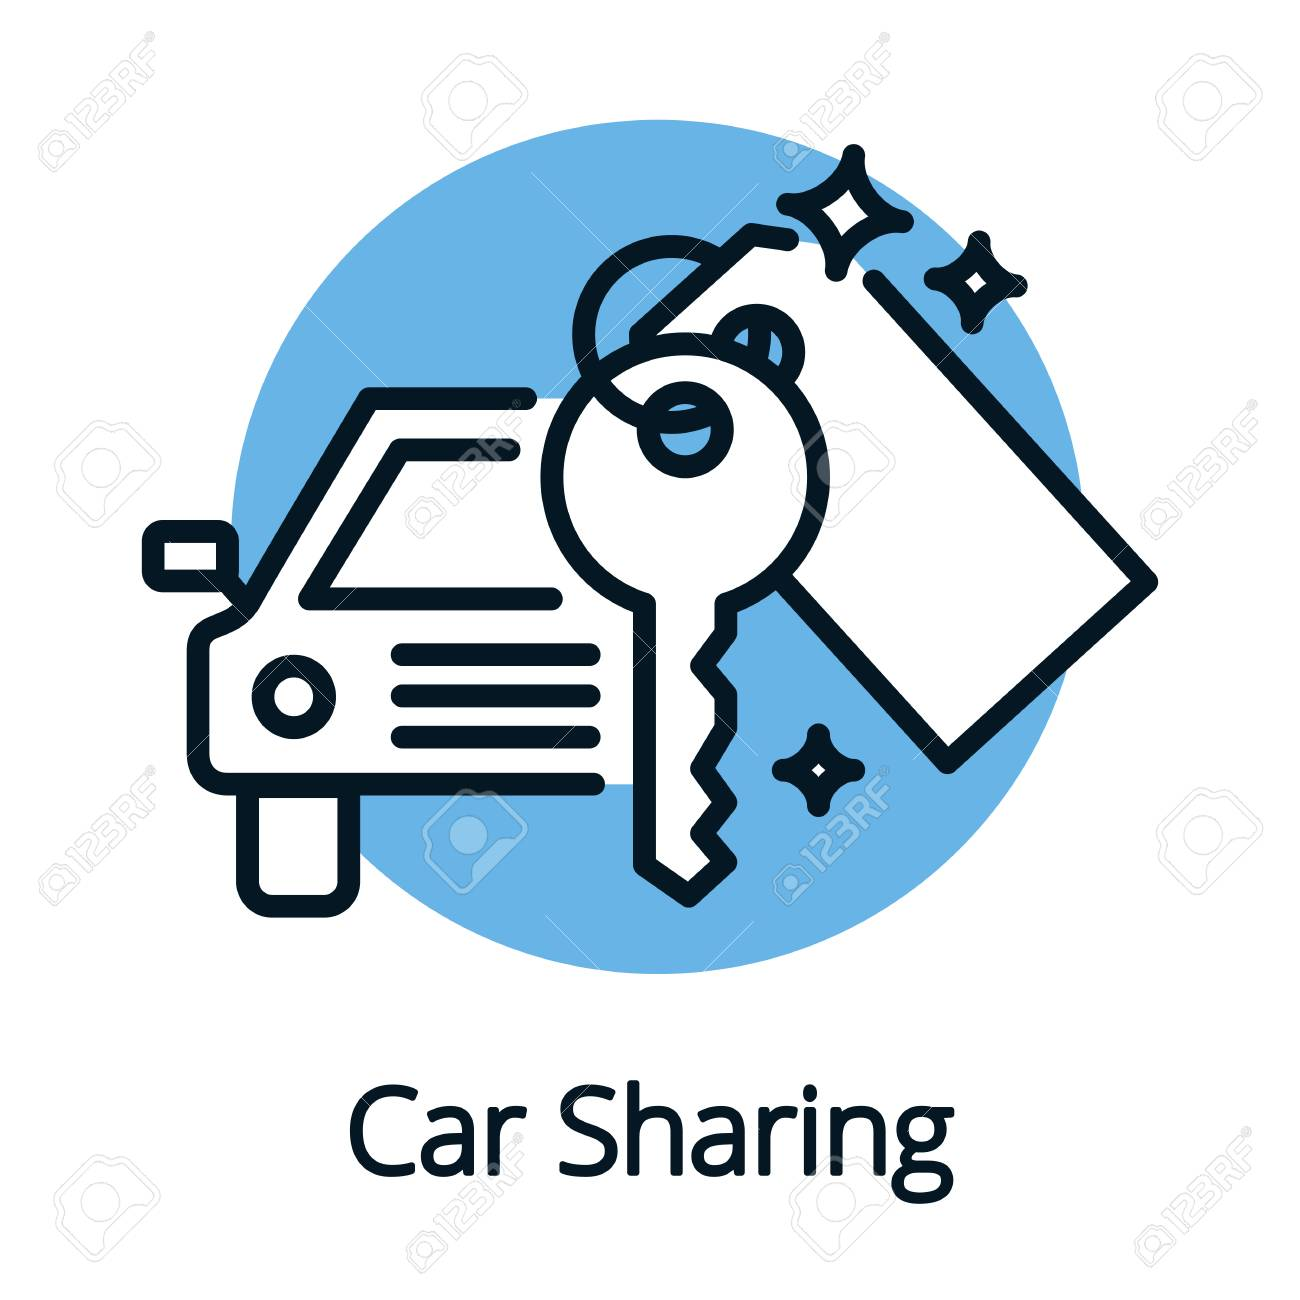 Vehicle Or Car Sharing Share Economy Concept Outline Design Royalty